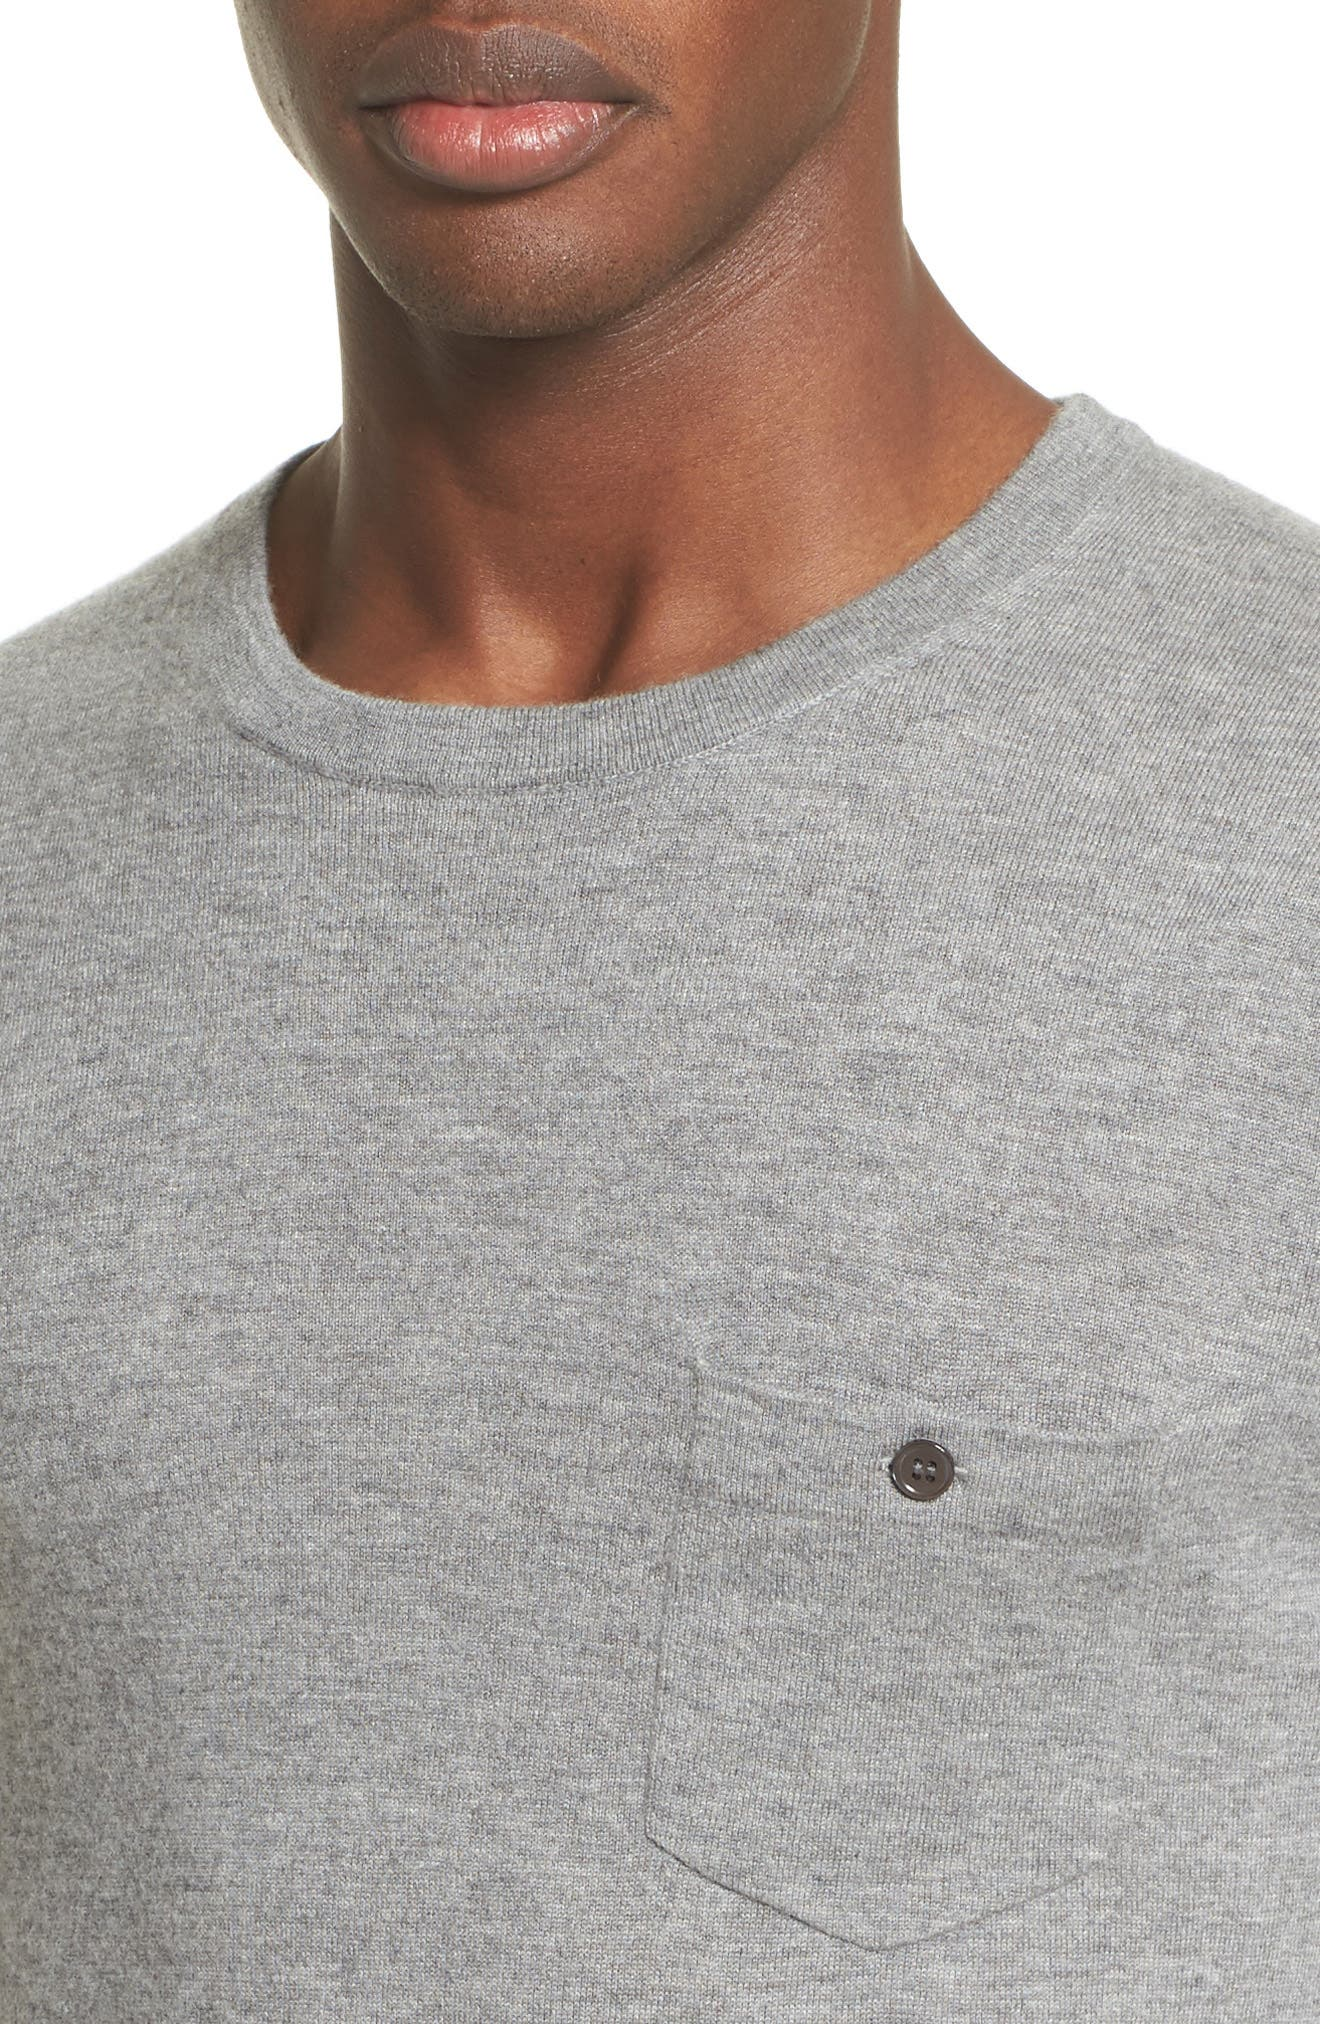 Cashmere Pocket T-Shirt,                             Alternate thumbnail 11, color,